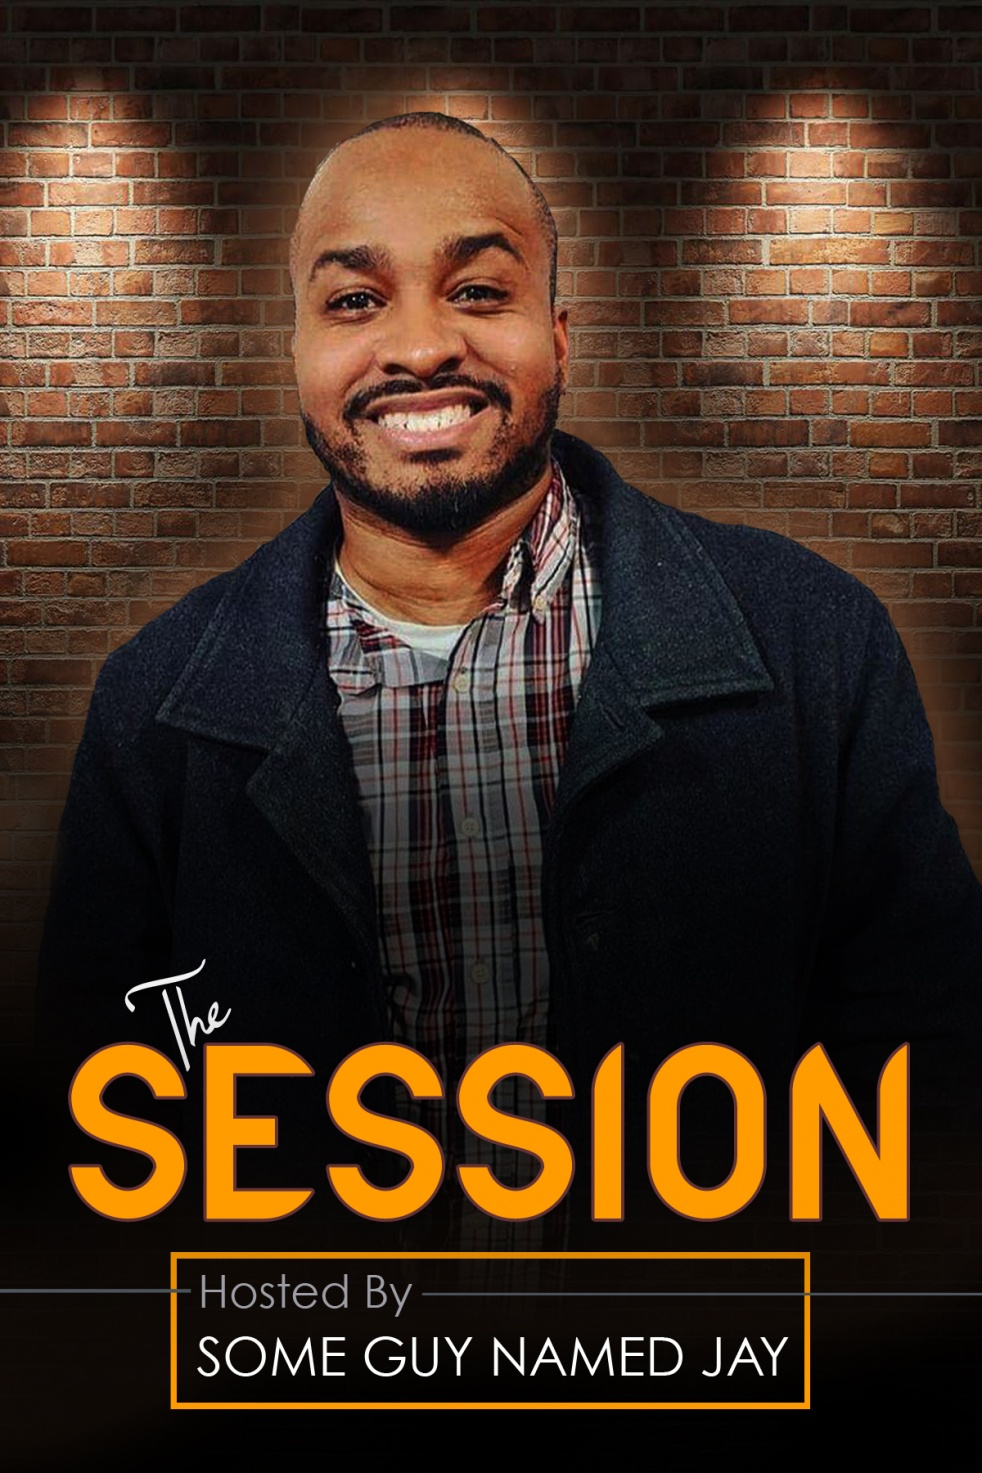 The Session Podcast - Cover Image